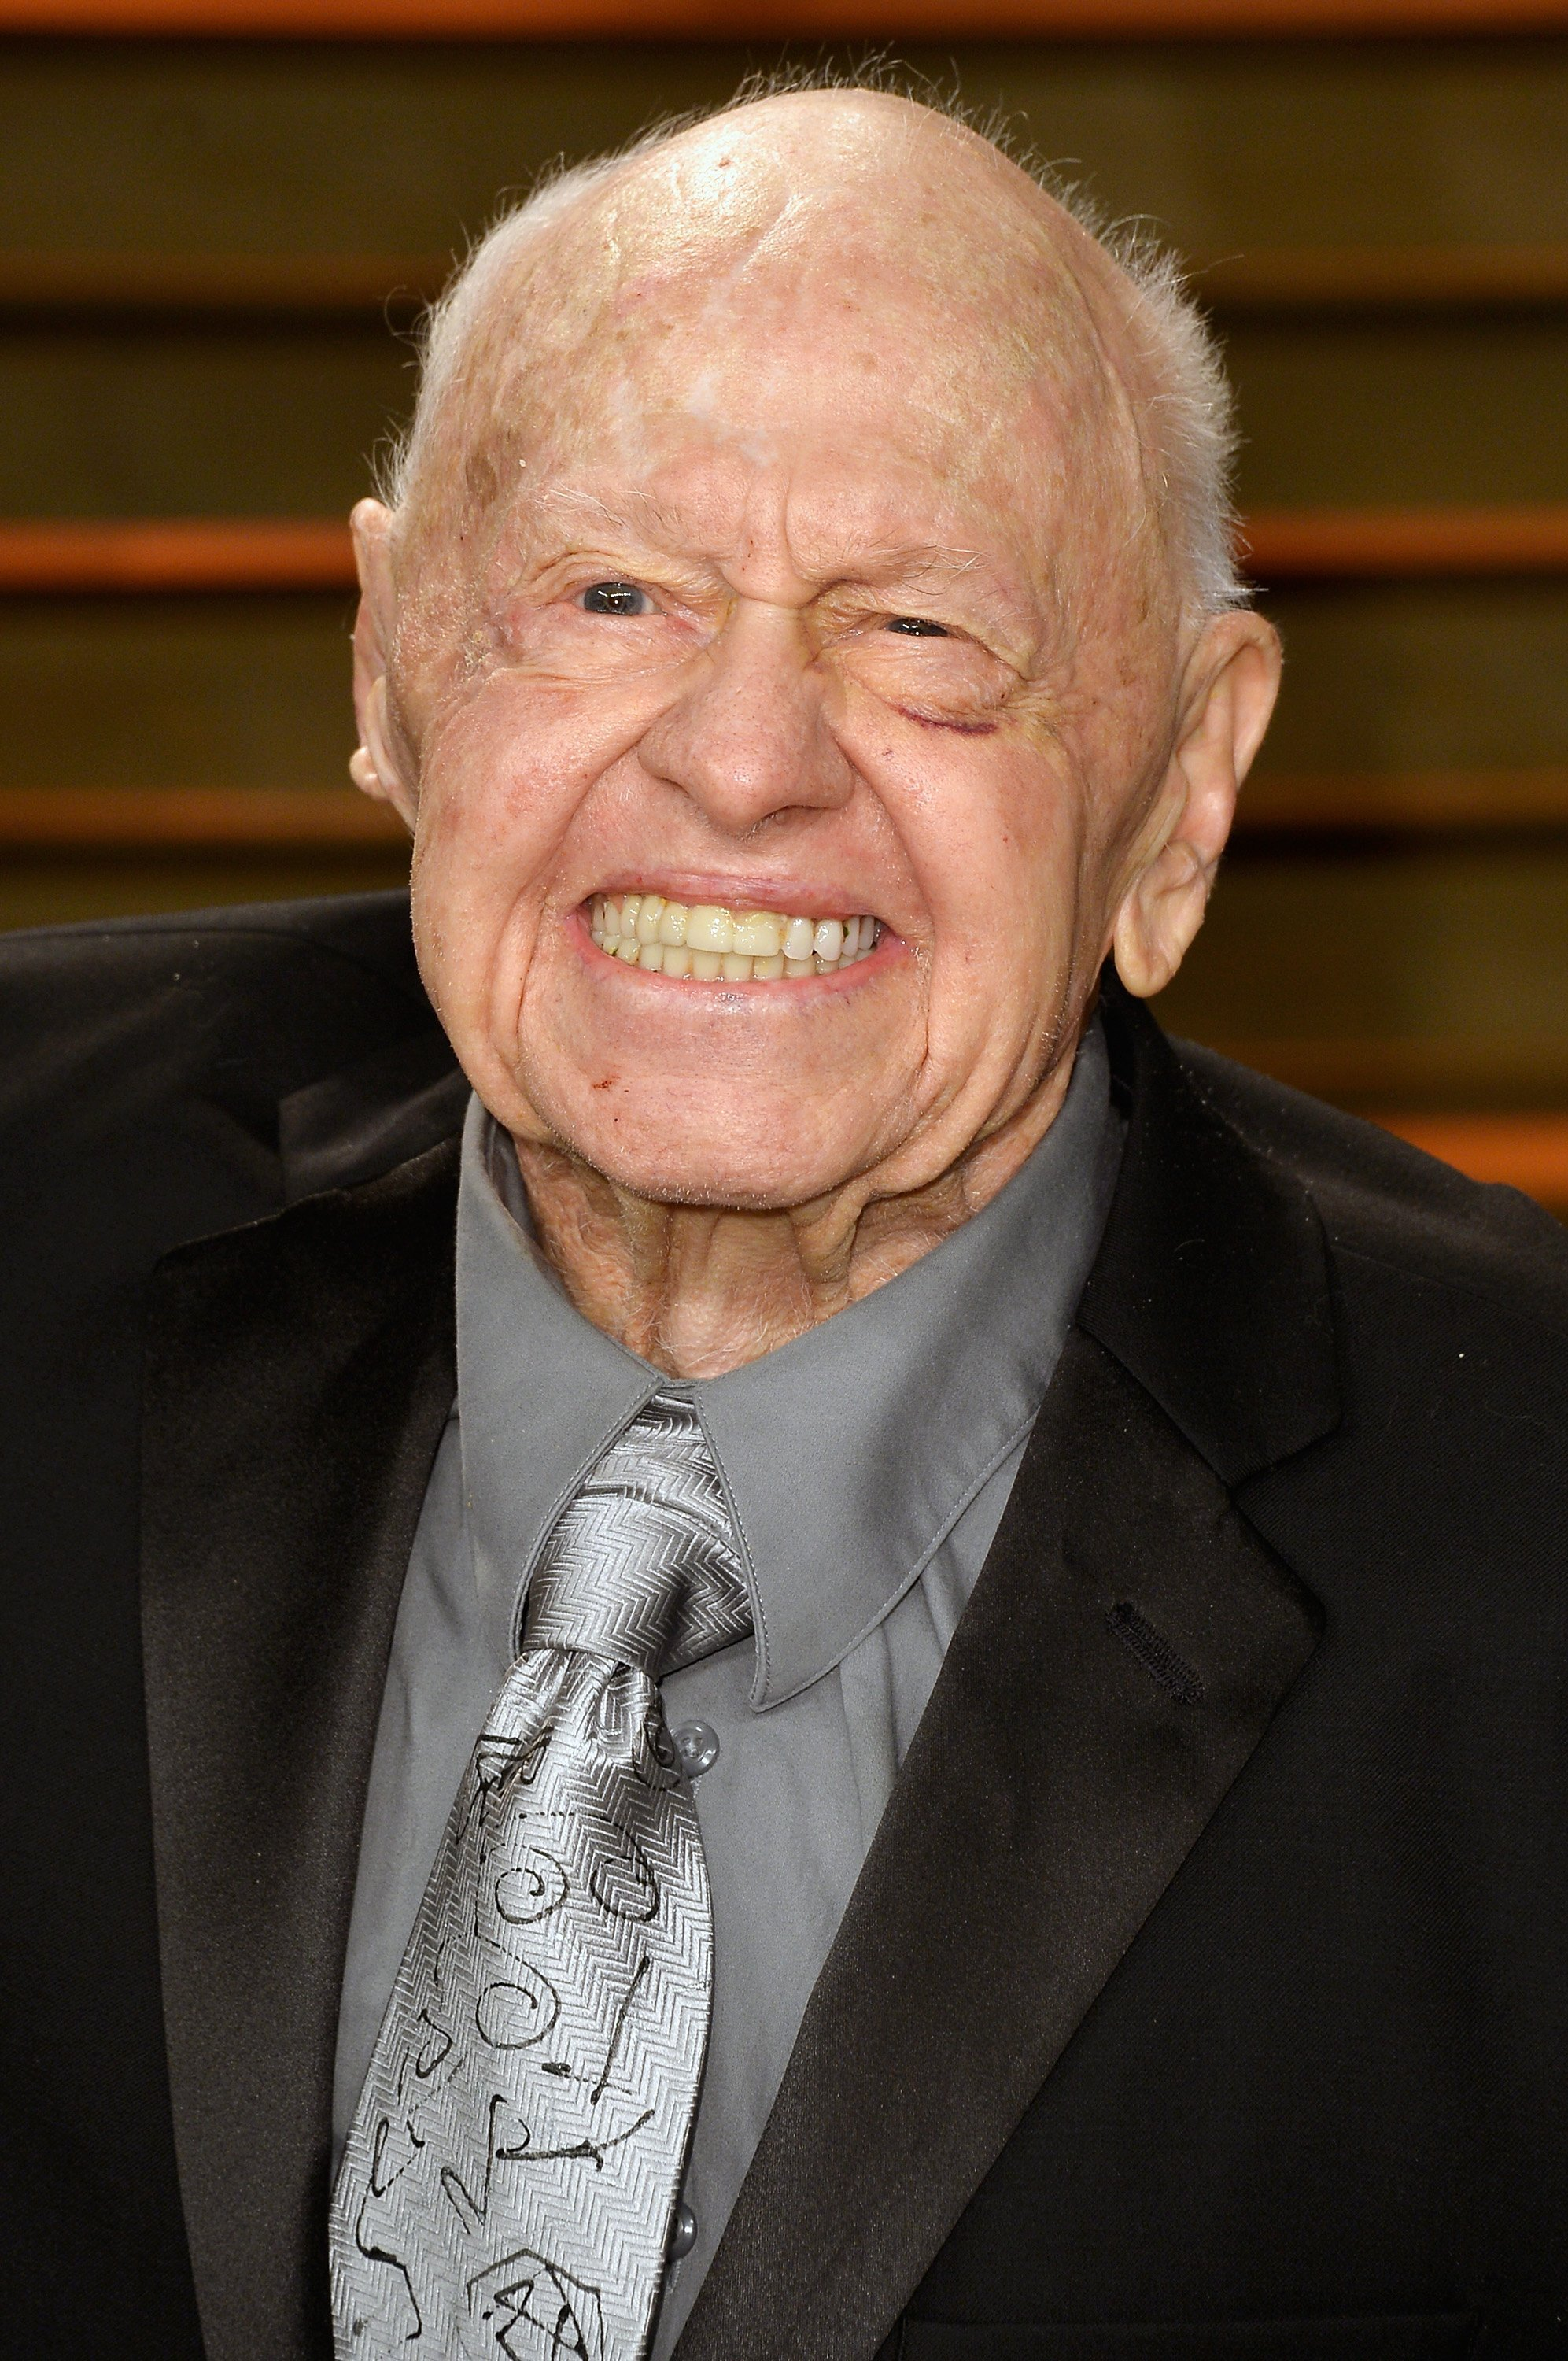 Mickey Rooney. I Image: Getty Images.